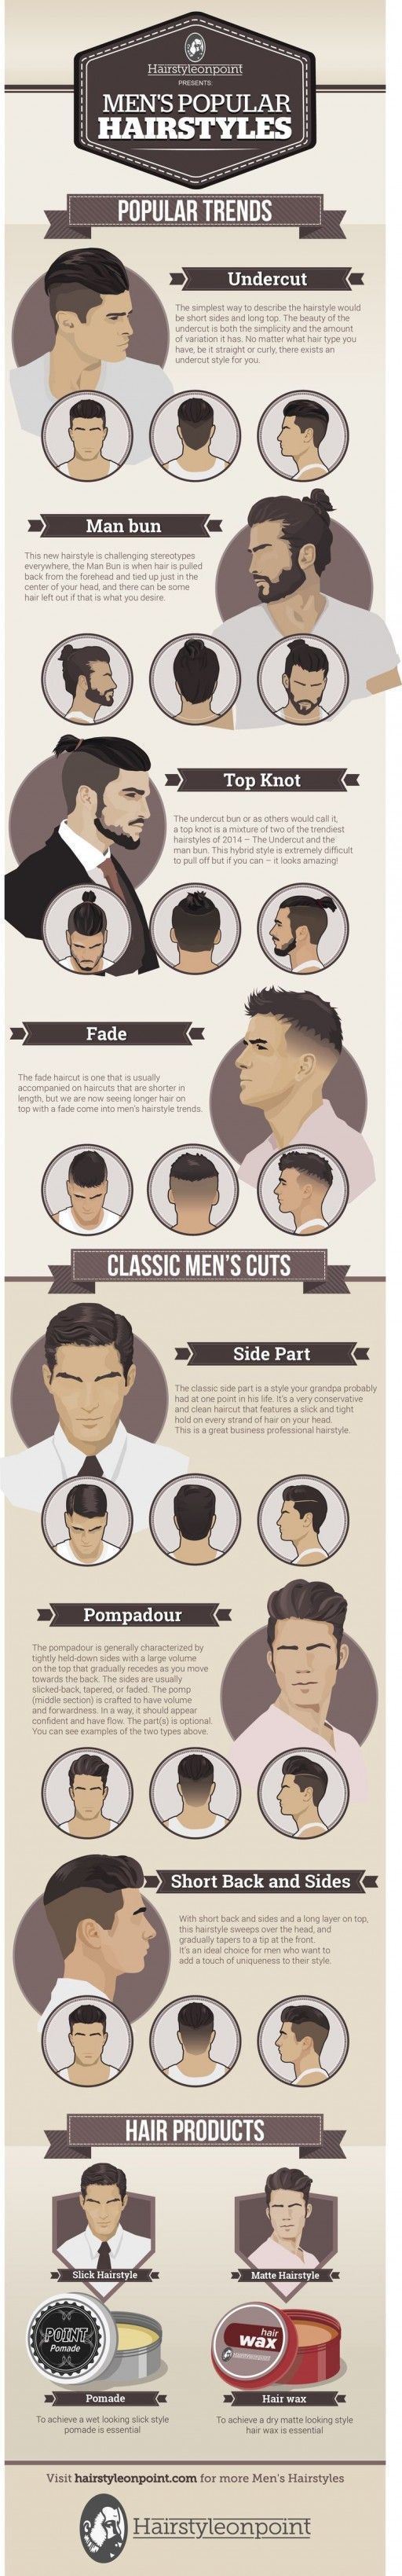 men's hairstyles groom the beauty department